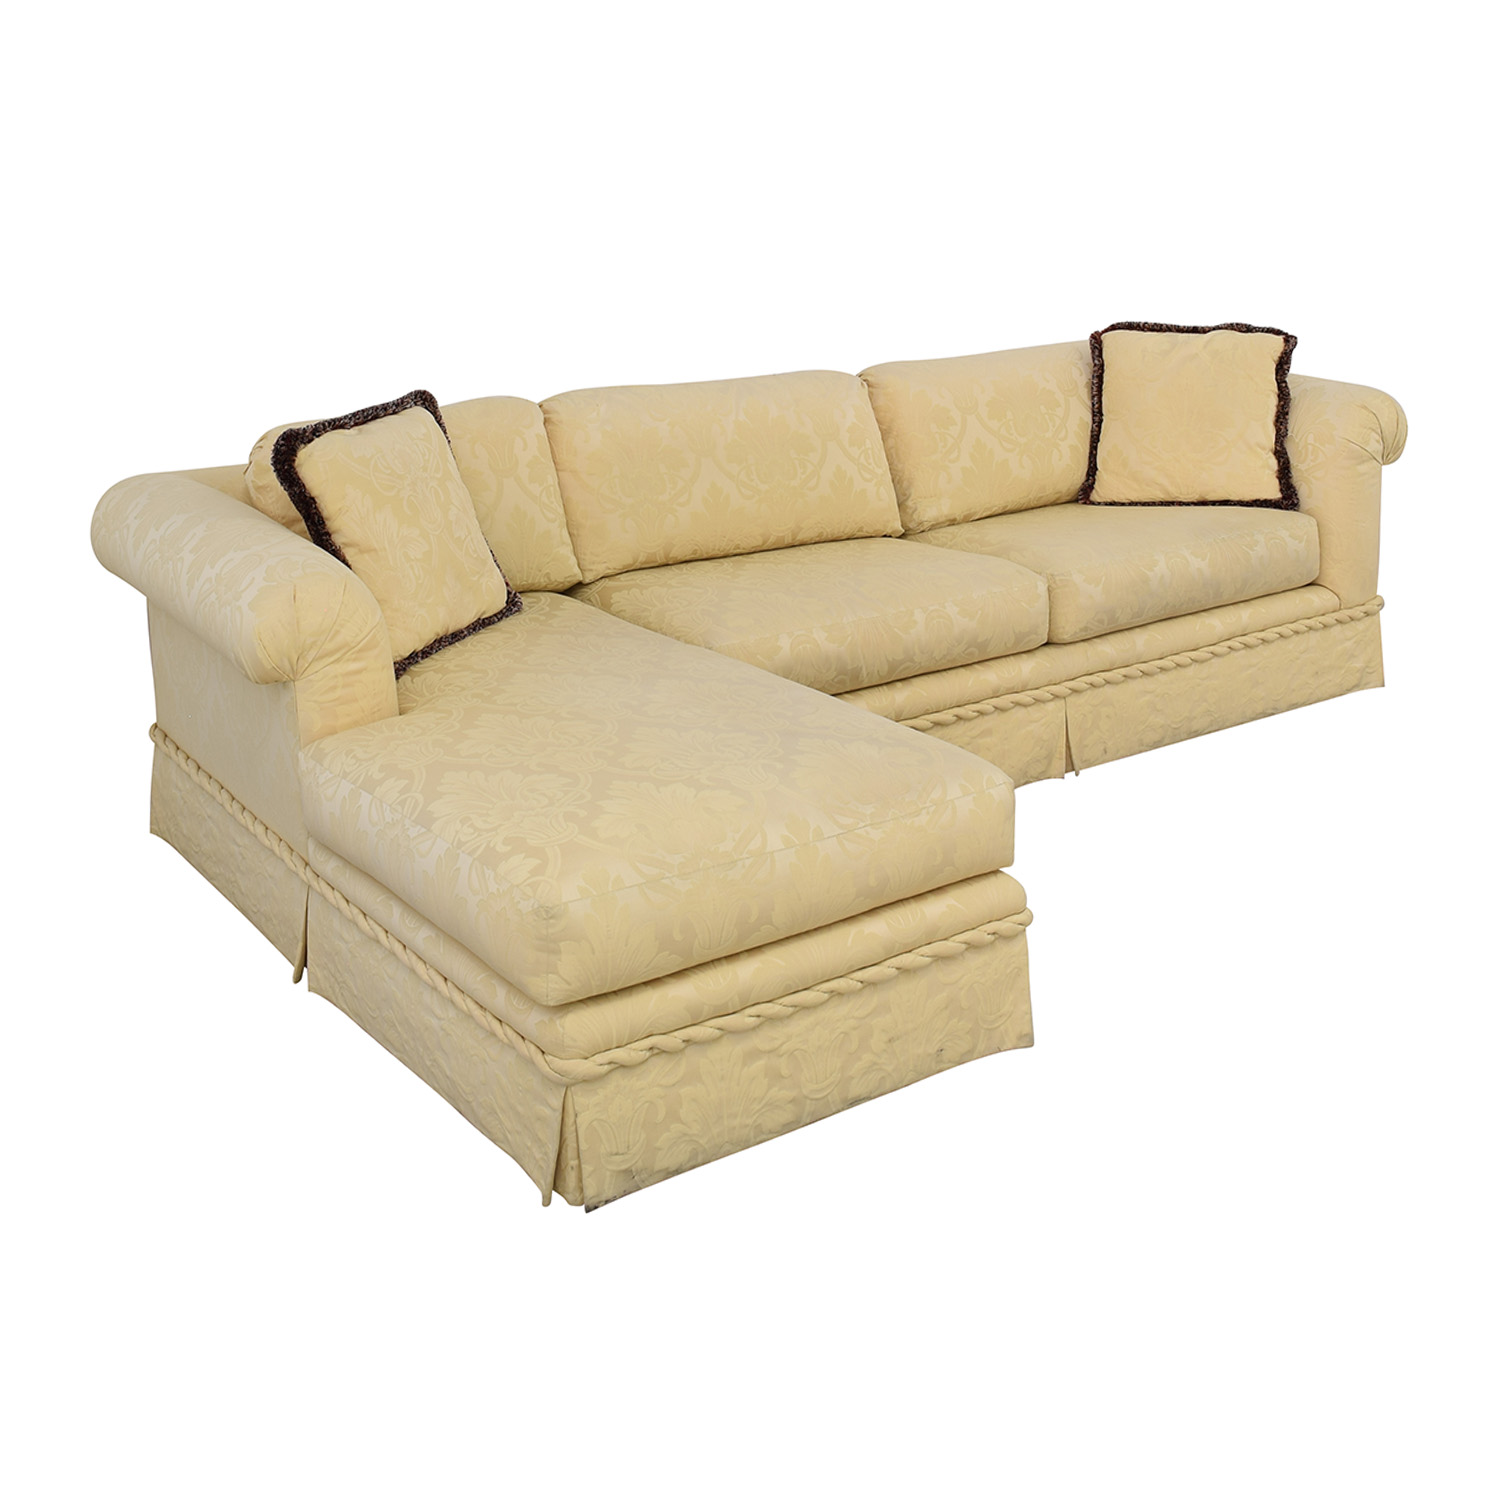 Kreiss Kreiss Chaise Sectional Sofa for sale